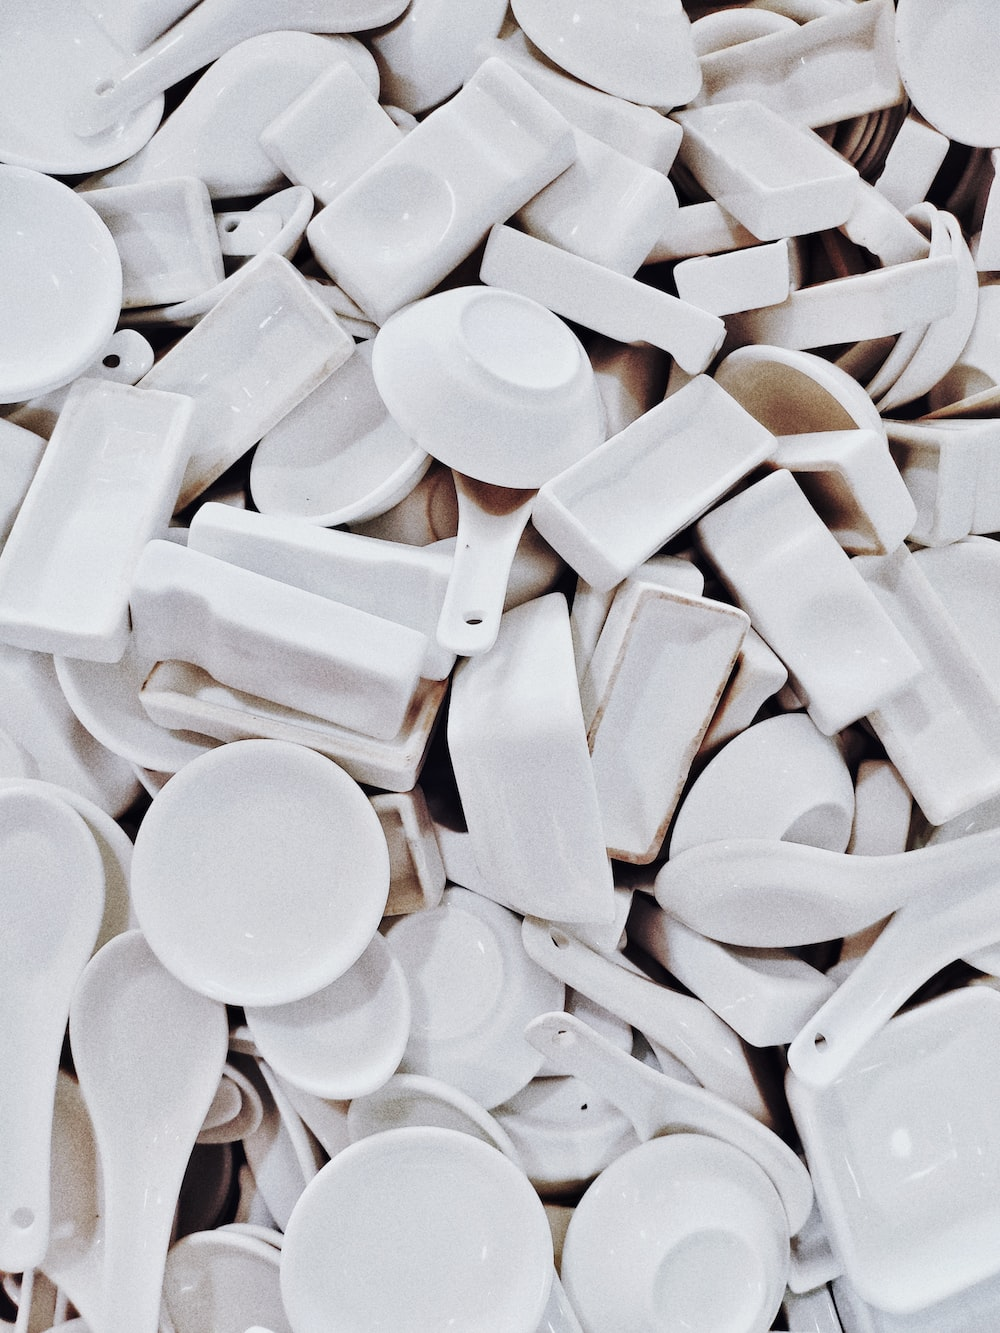 white ceramic bowls and spoons